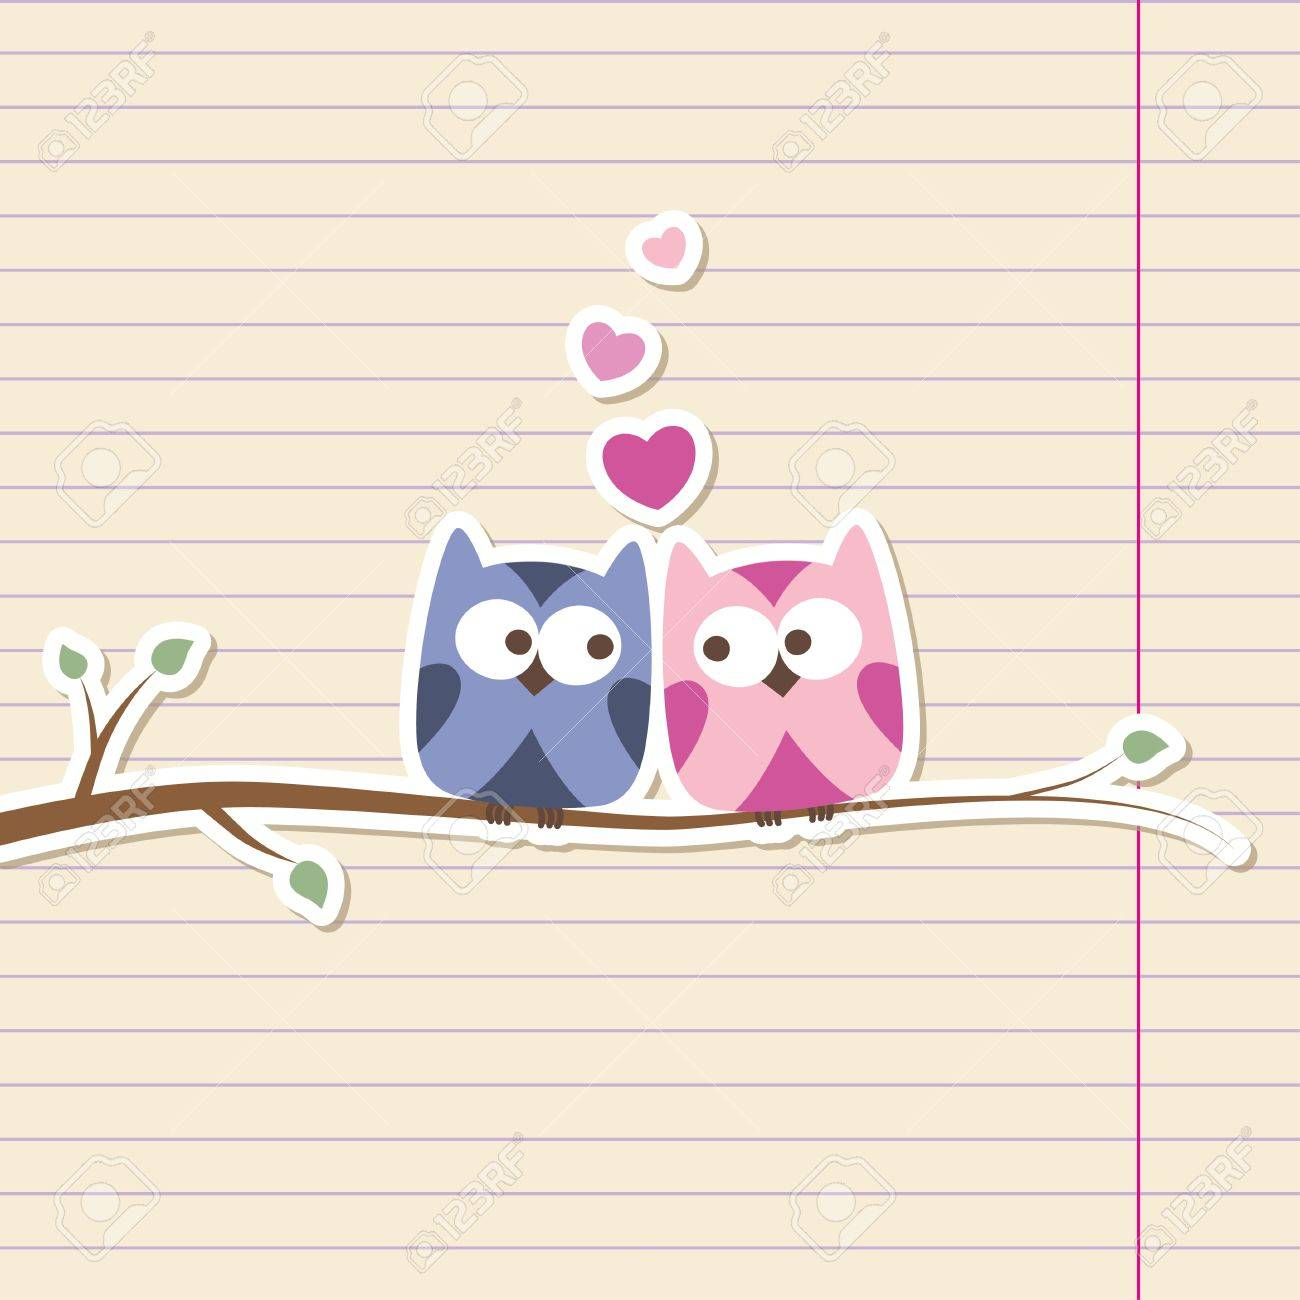 two owls in love, simple romantic illustration Stock Vector - 14168538